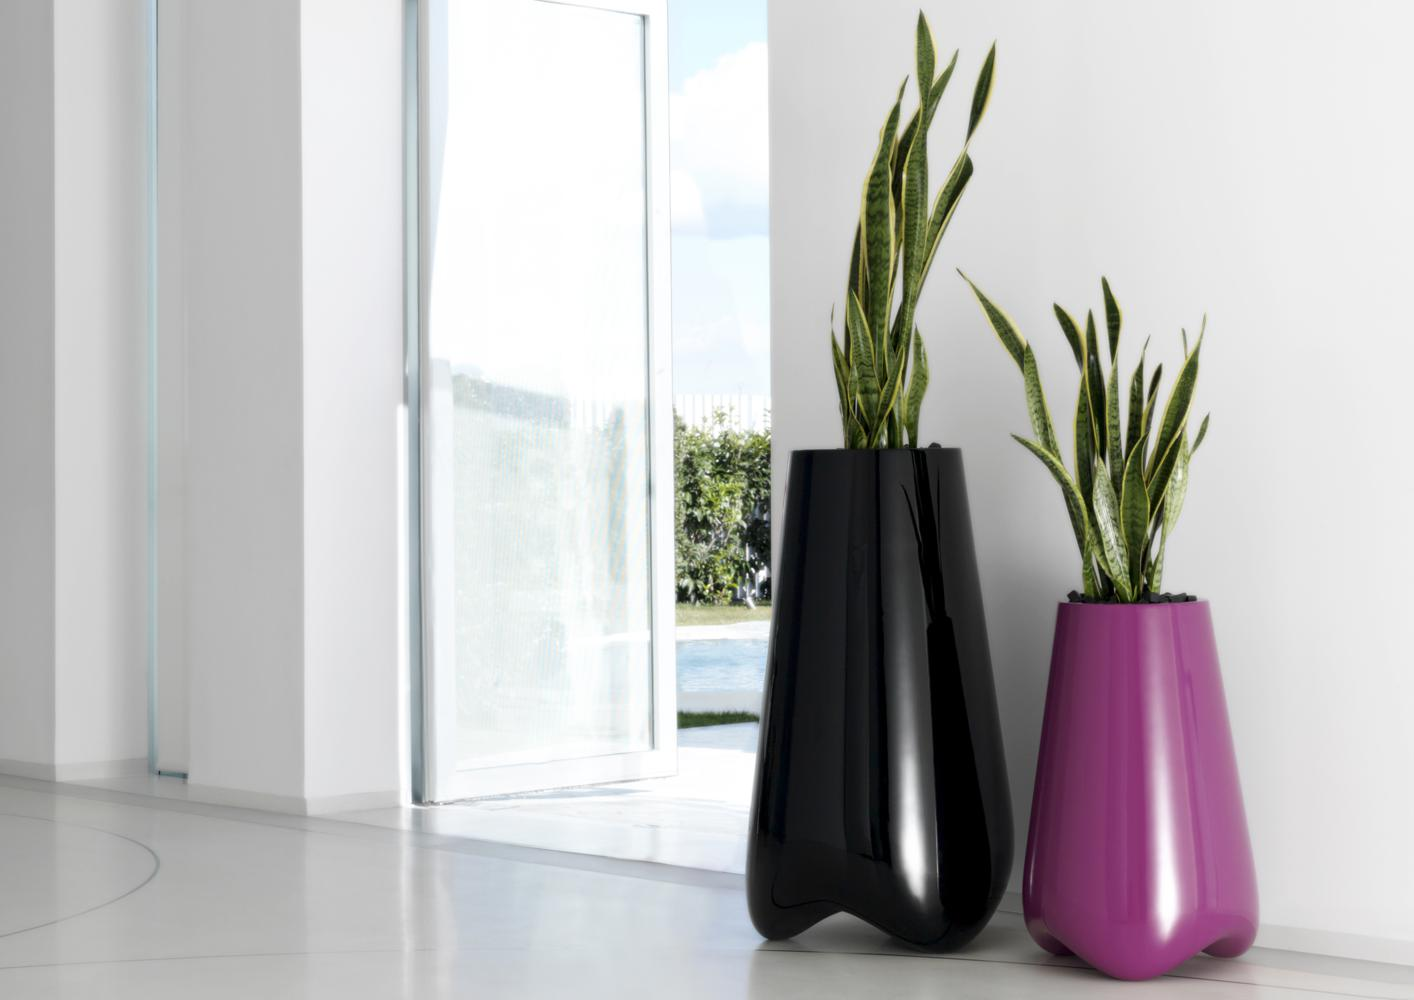 acheter votre vase contemporain option clairage led chez simeuble. Black Bedroom Furniture Sets. Home Design Ideas